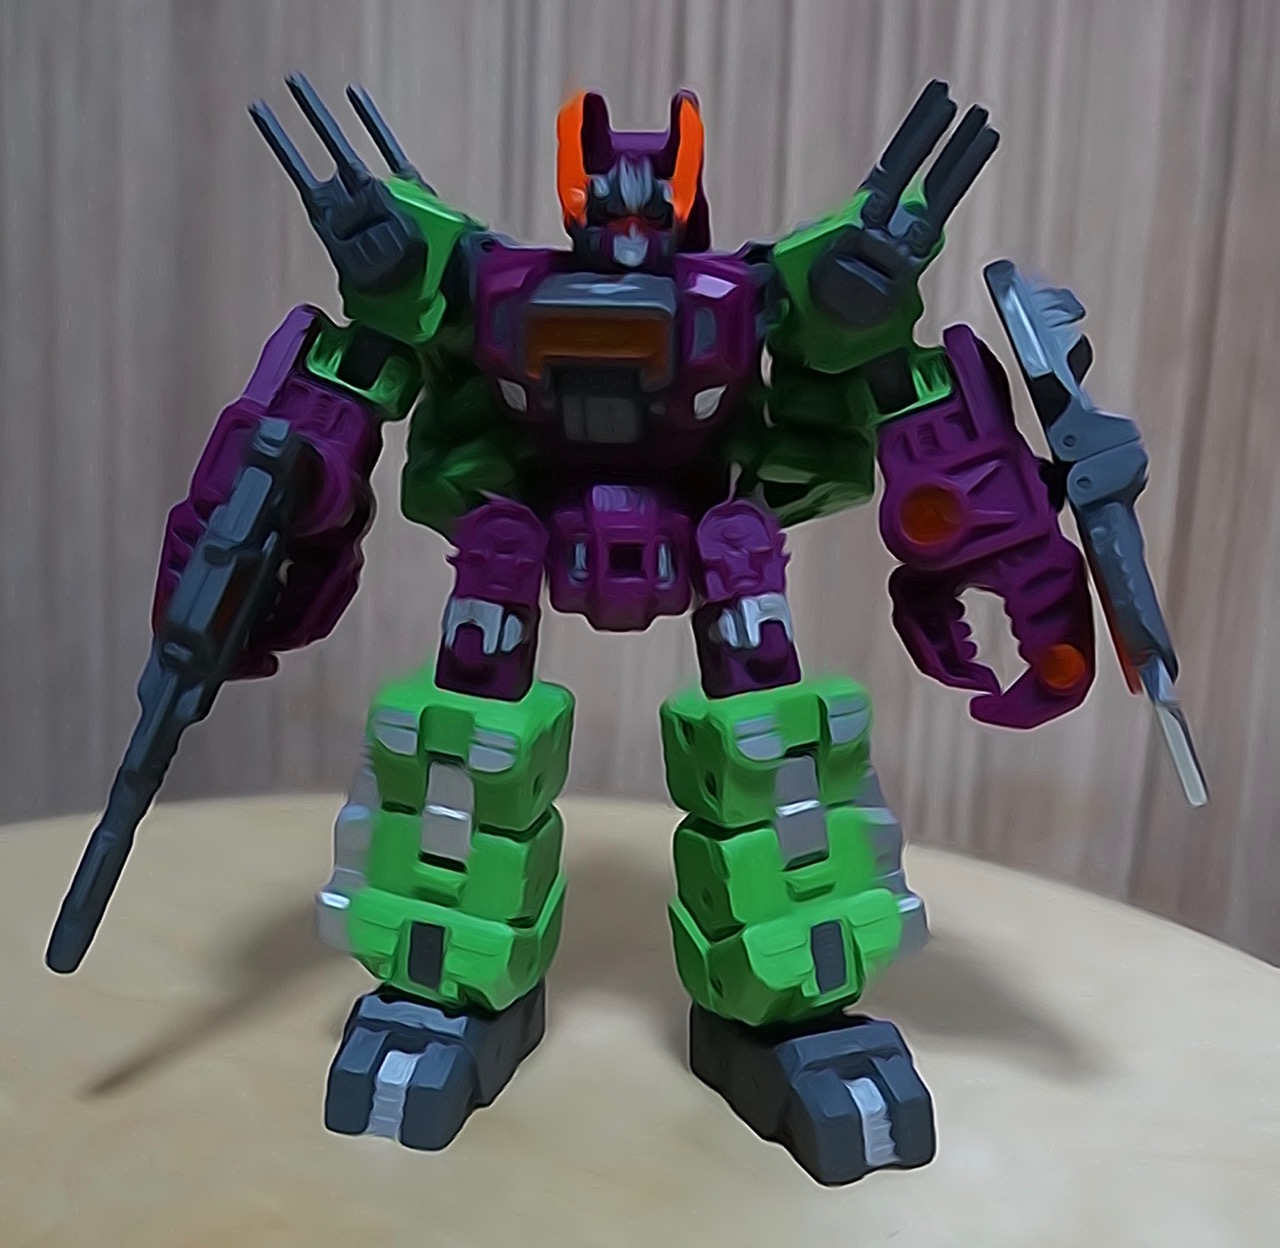 Alteregoistic Toy Blogger 3rd Party Scorponok By Iron Factory